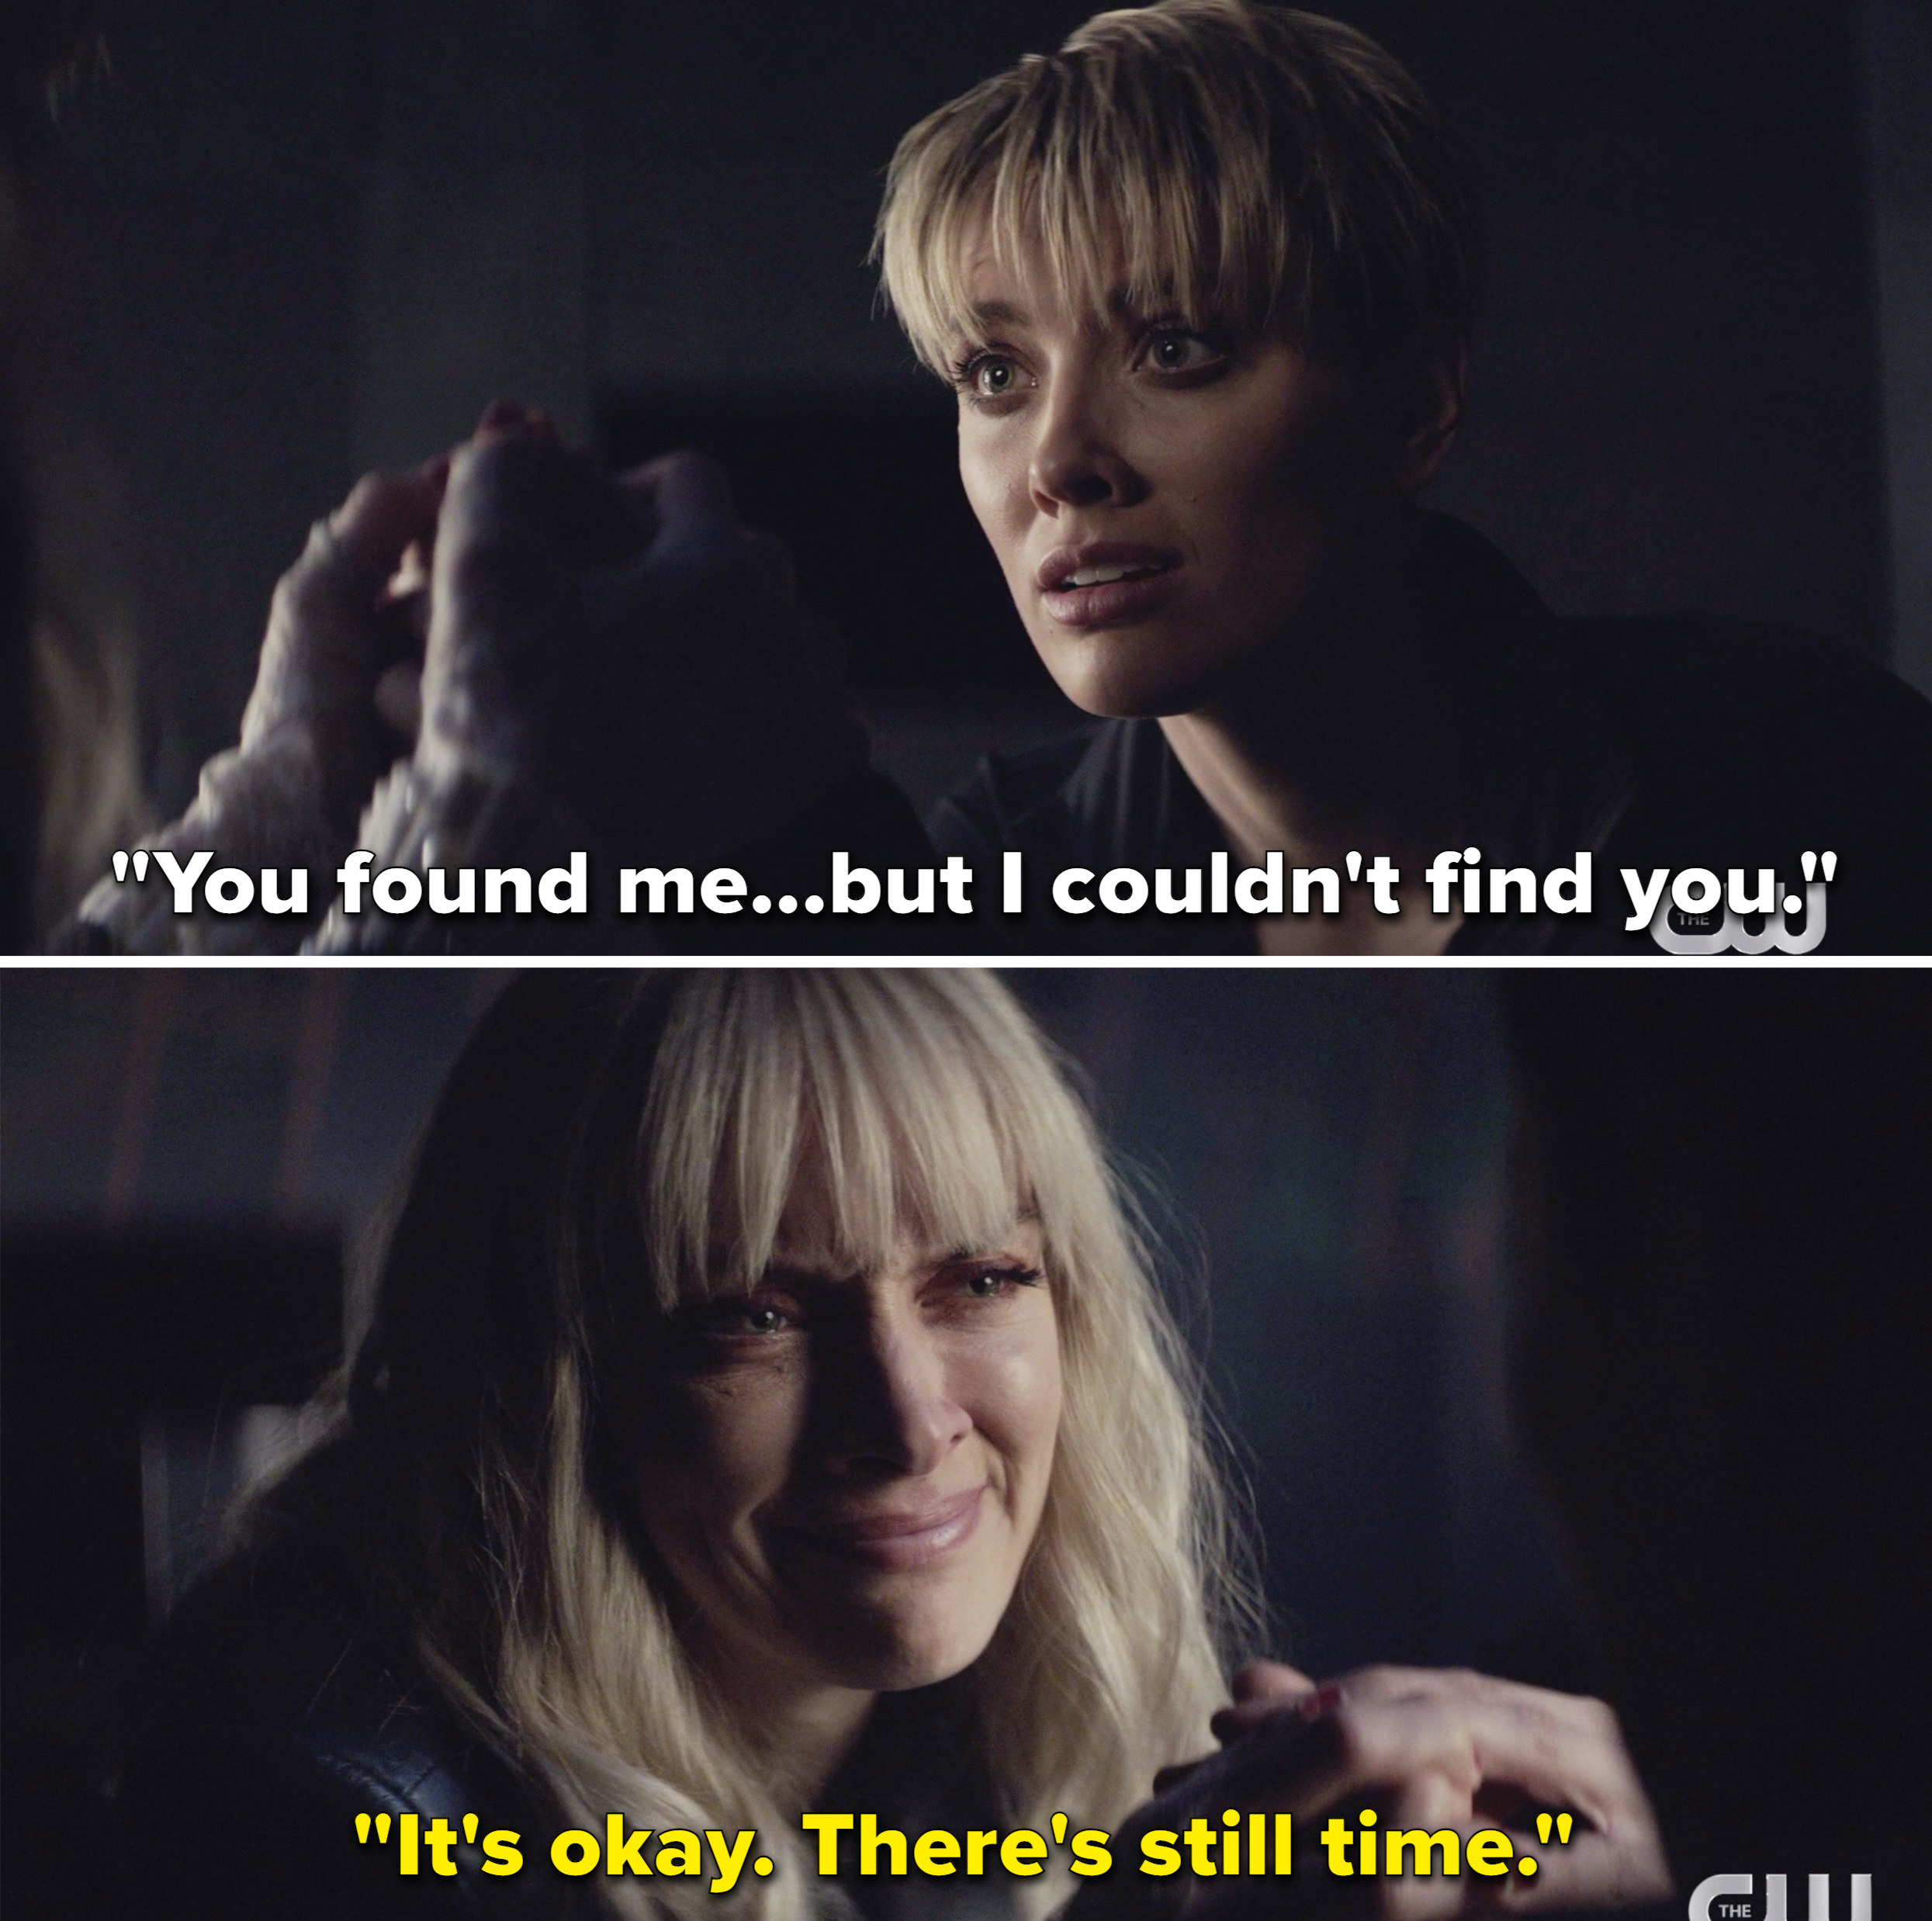 """Kate saying, """"You found me, but I couldn't find you,"""" and Alice responding with, """"It's okay. There's still time"""""""